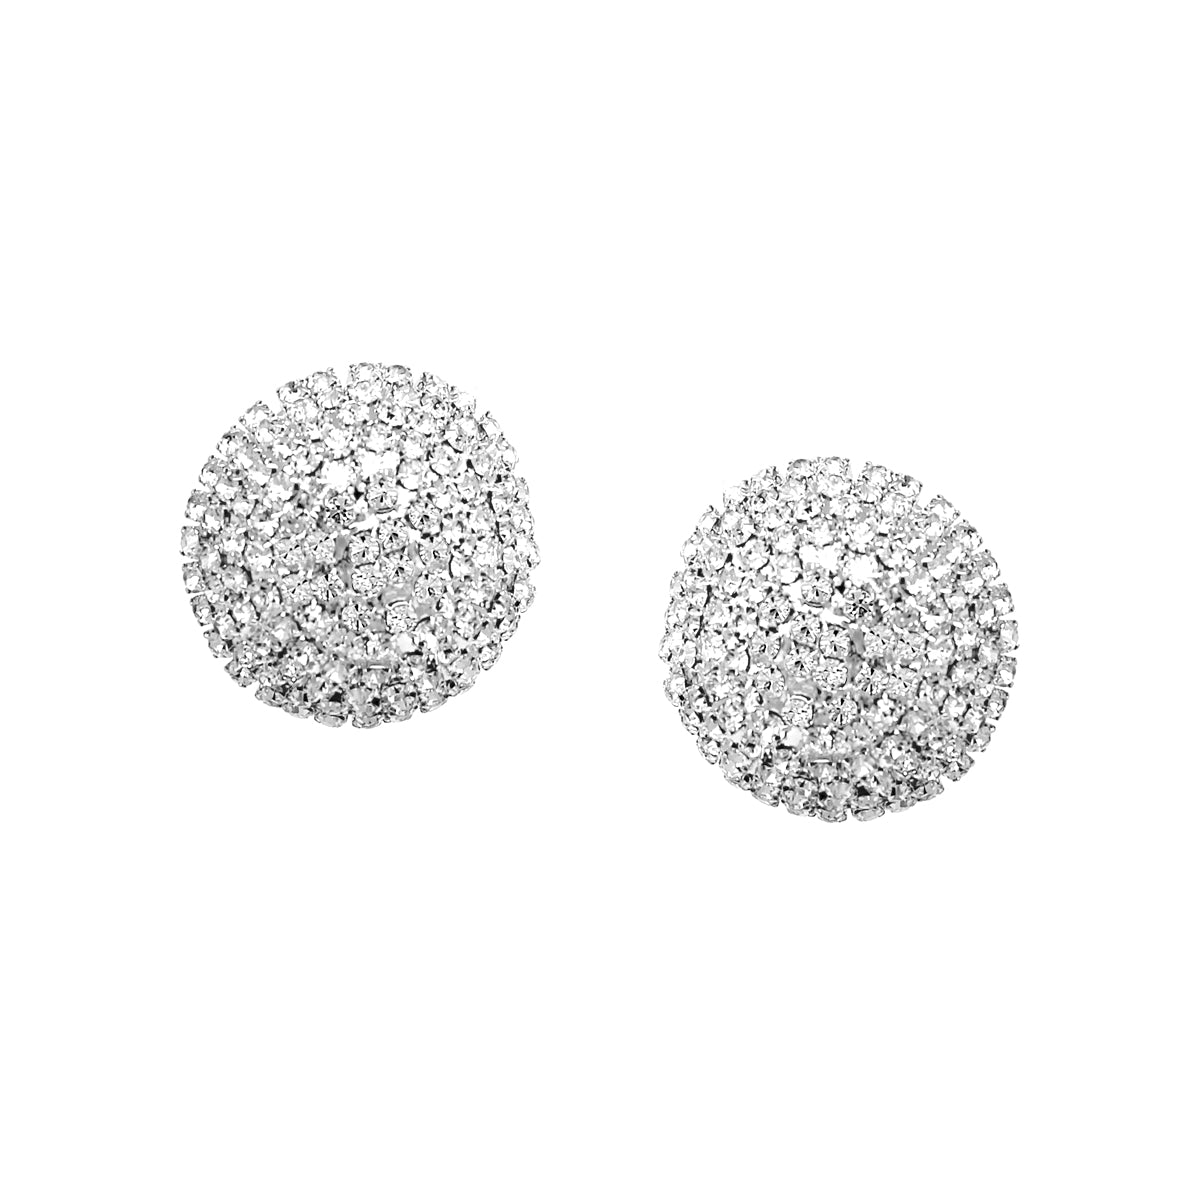 Rhinestone Pave Dome Shape Stud Earrings